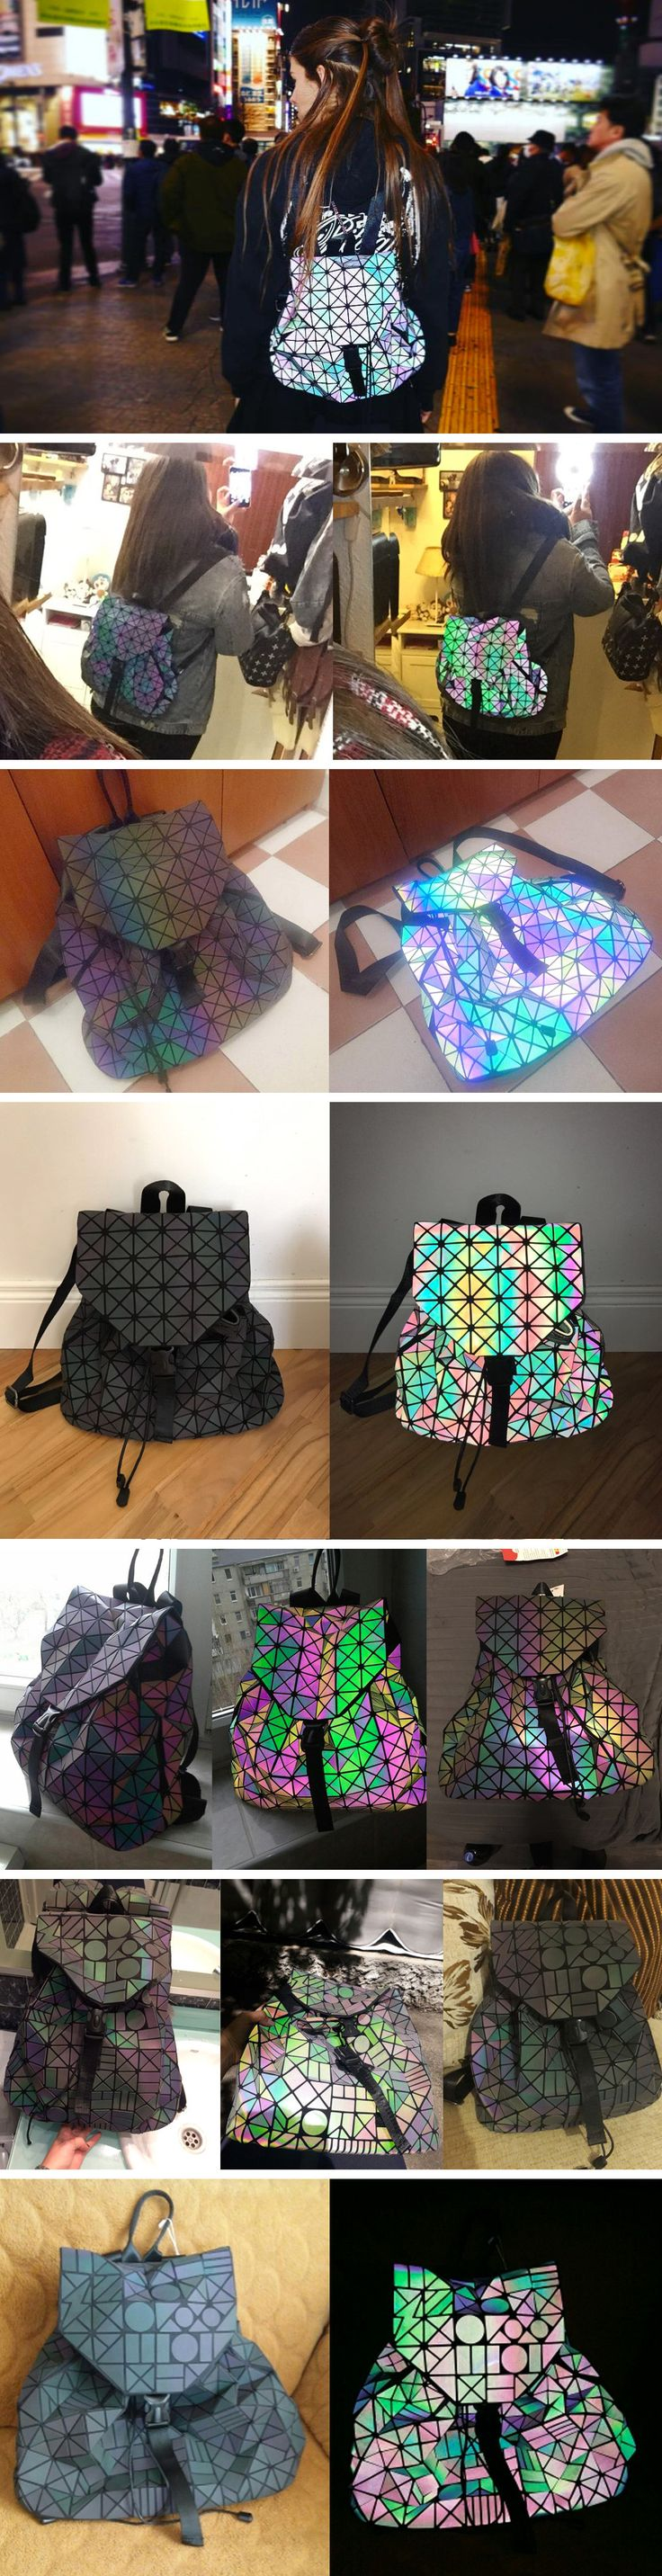 NEW 2017 TREND: STYLISH LUMINESKBACKPACK Created with a sophisticated geometric design, this unique backpackwill turn heads (there's nothing like it on the ma